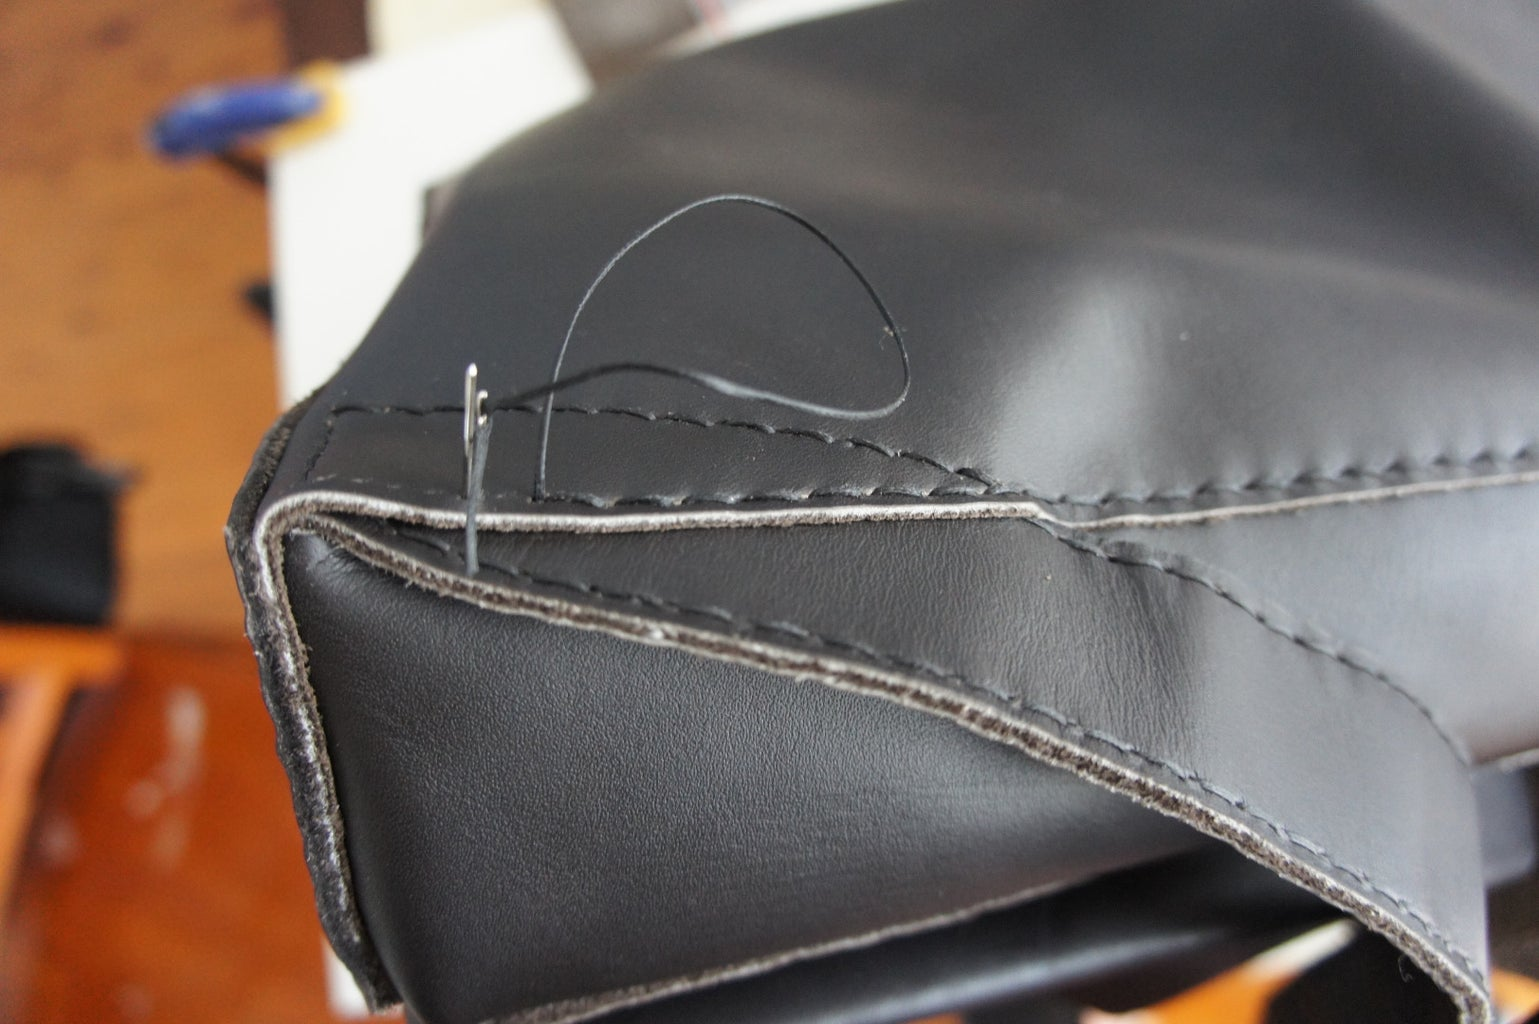 Assembling the Main Compartment: Sides and Bottom